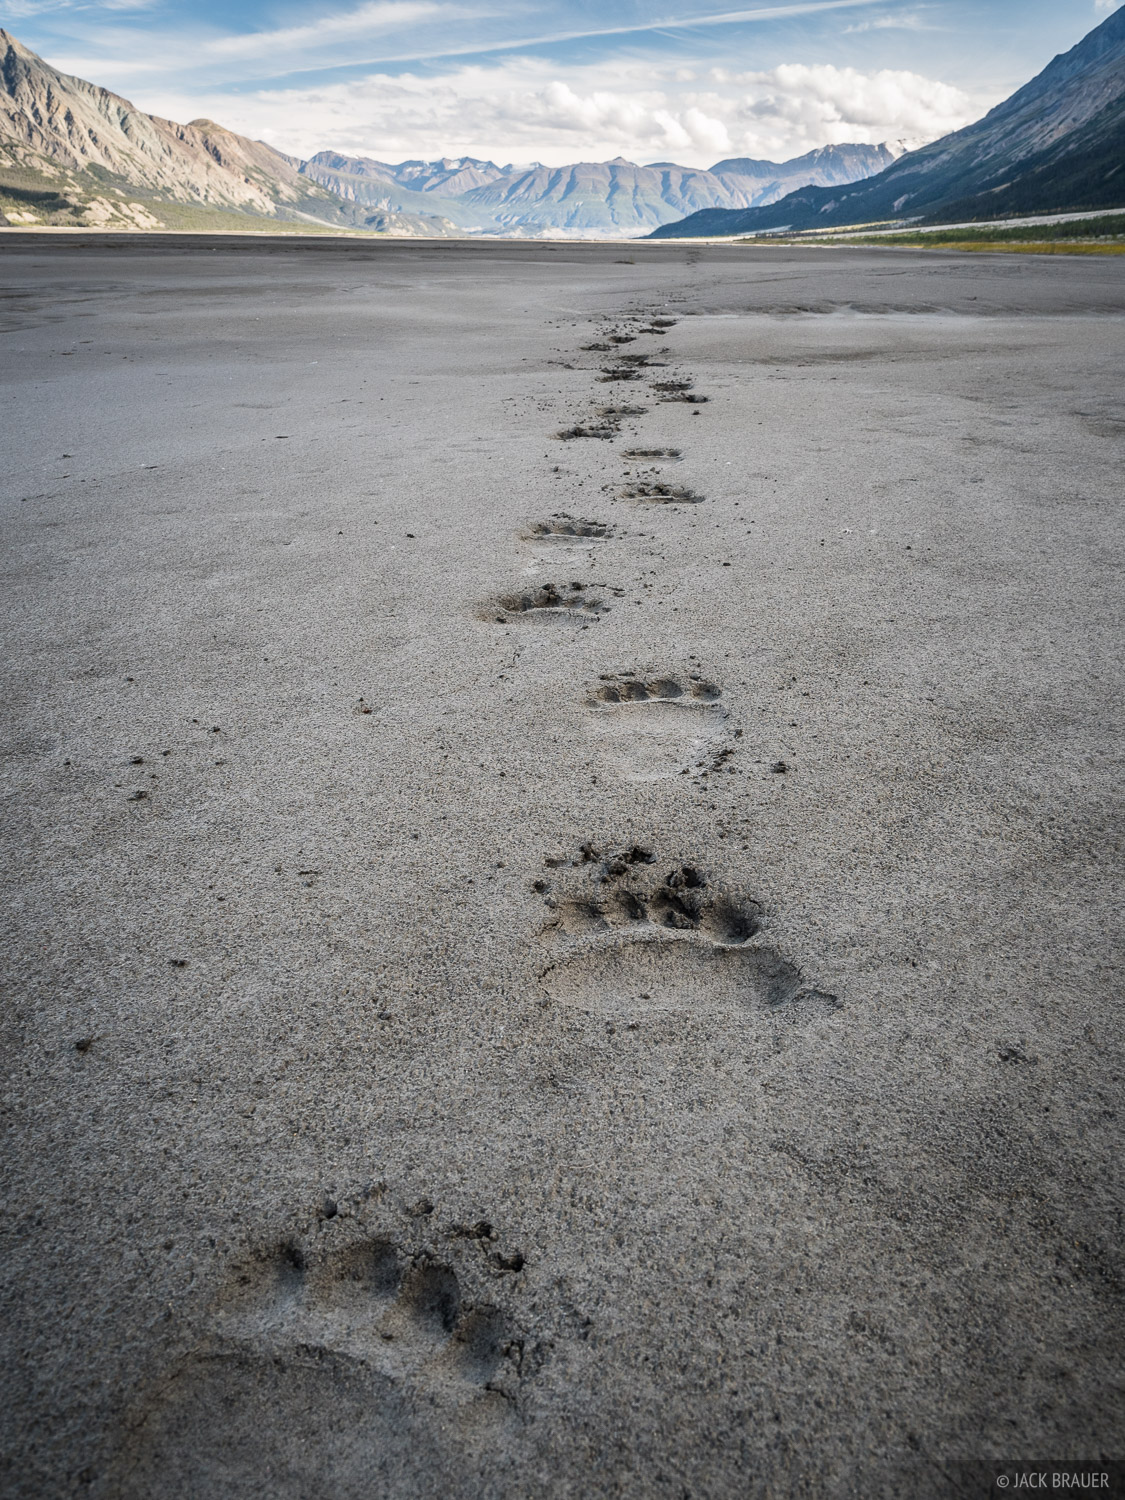 Following fresh grizzly bear tracks up the Slims River valley. We saw grizzly tracks all over the place on this trek, but never...